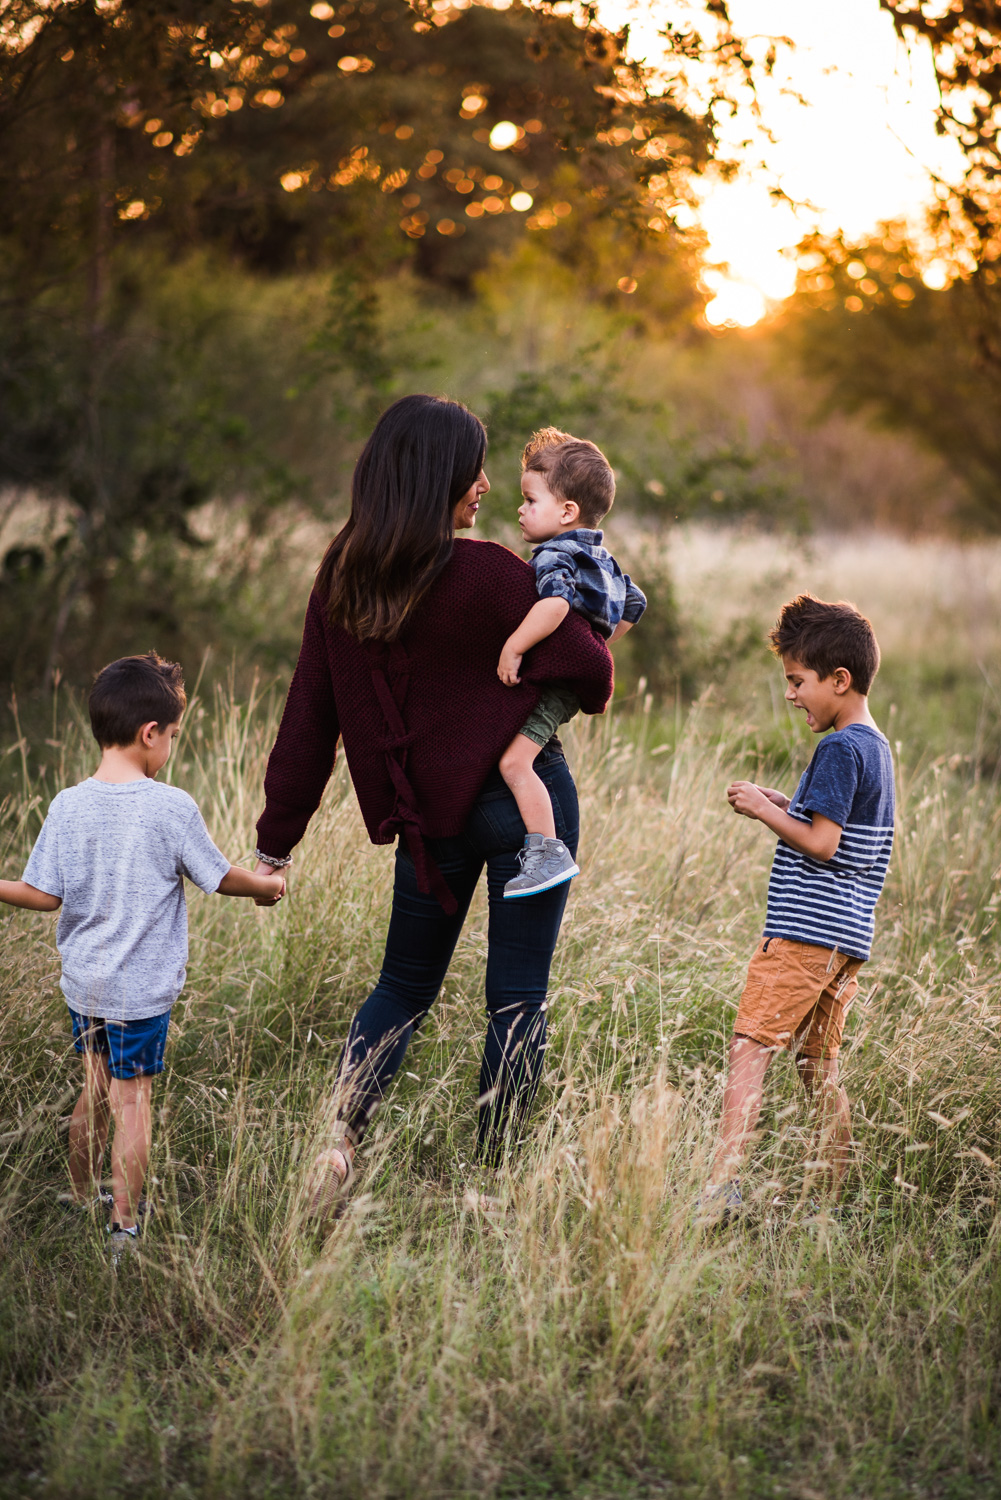 Abby Kennan, San Antonio Lifestyle Photographer-Abby Kennan Photography-San Antonio Family Photographer-15.jpg